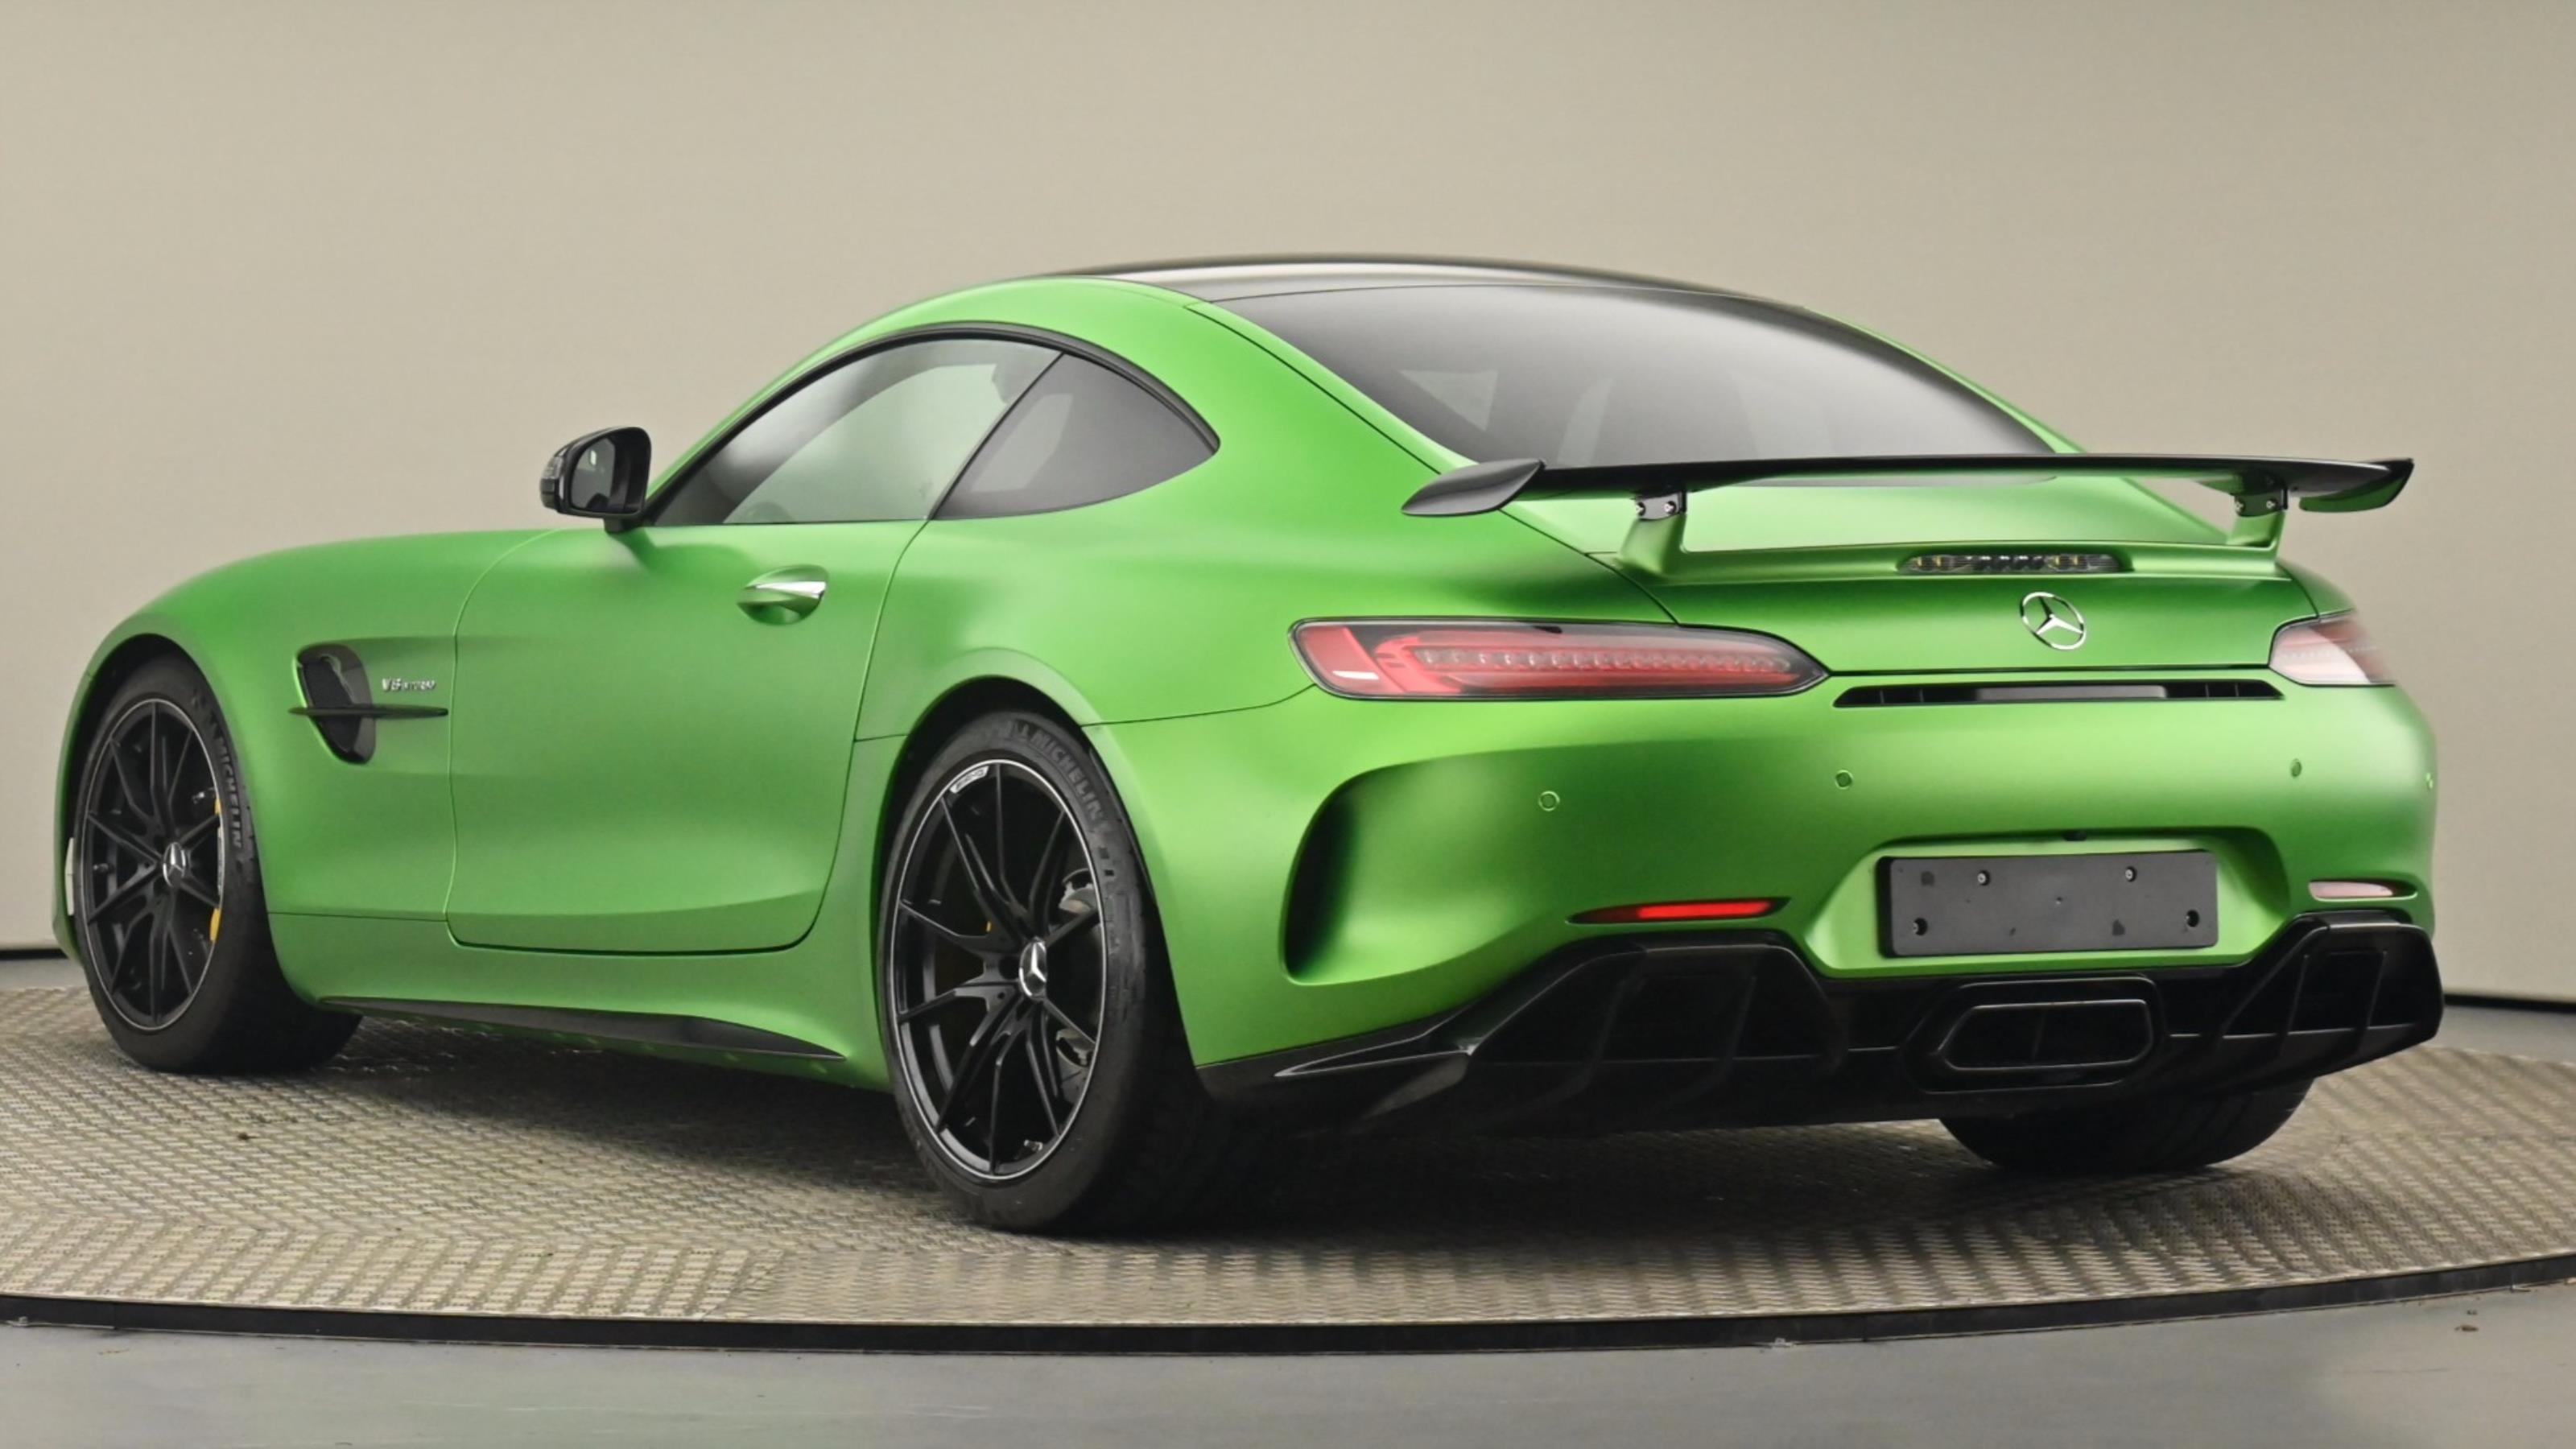 Used 2018 Mercedes-Benz AMG GT GT R Premium 2dr Auto GREEN at Saxton4x4